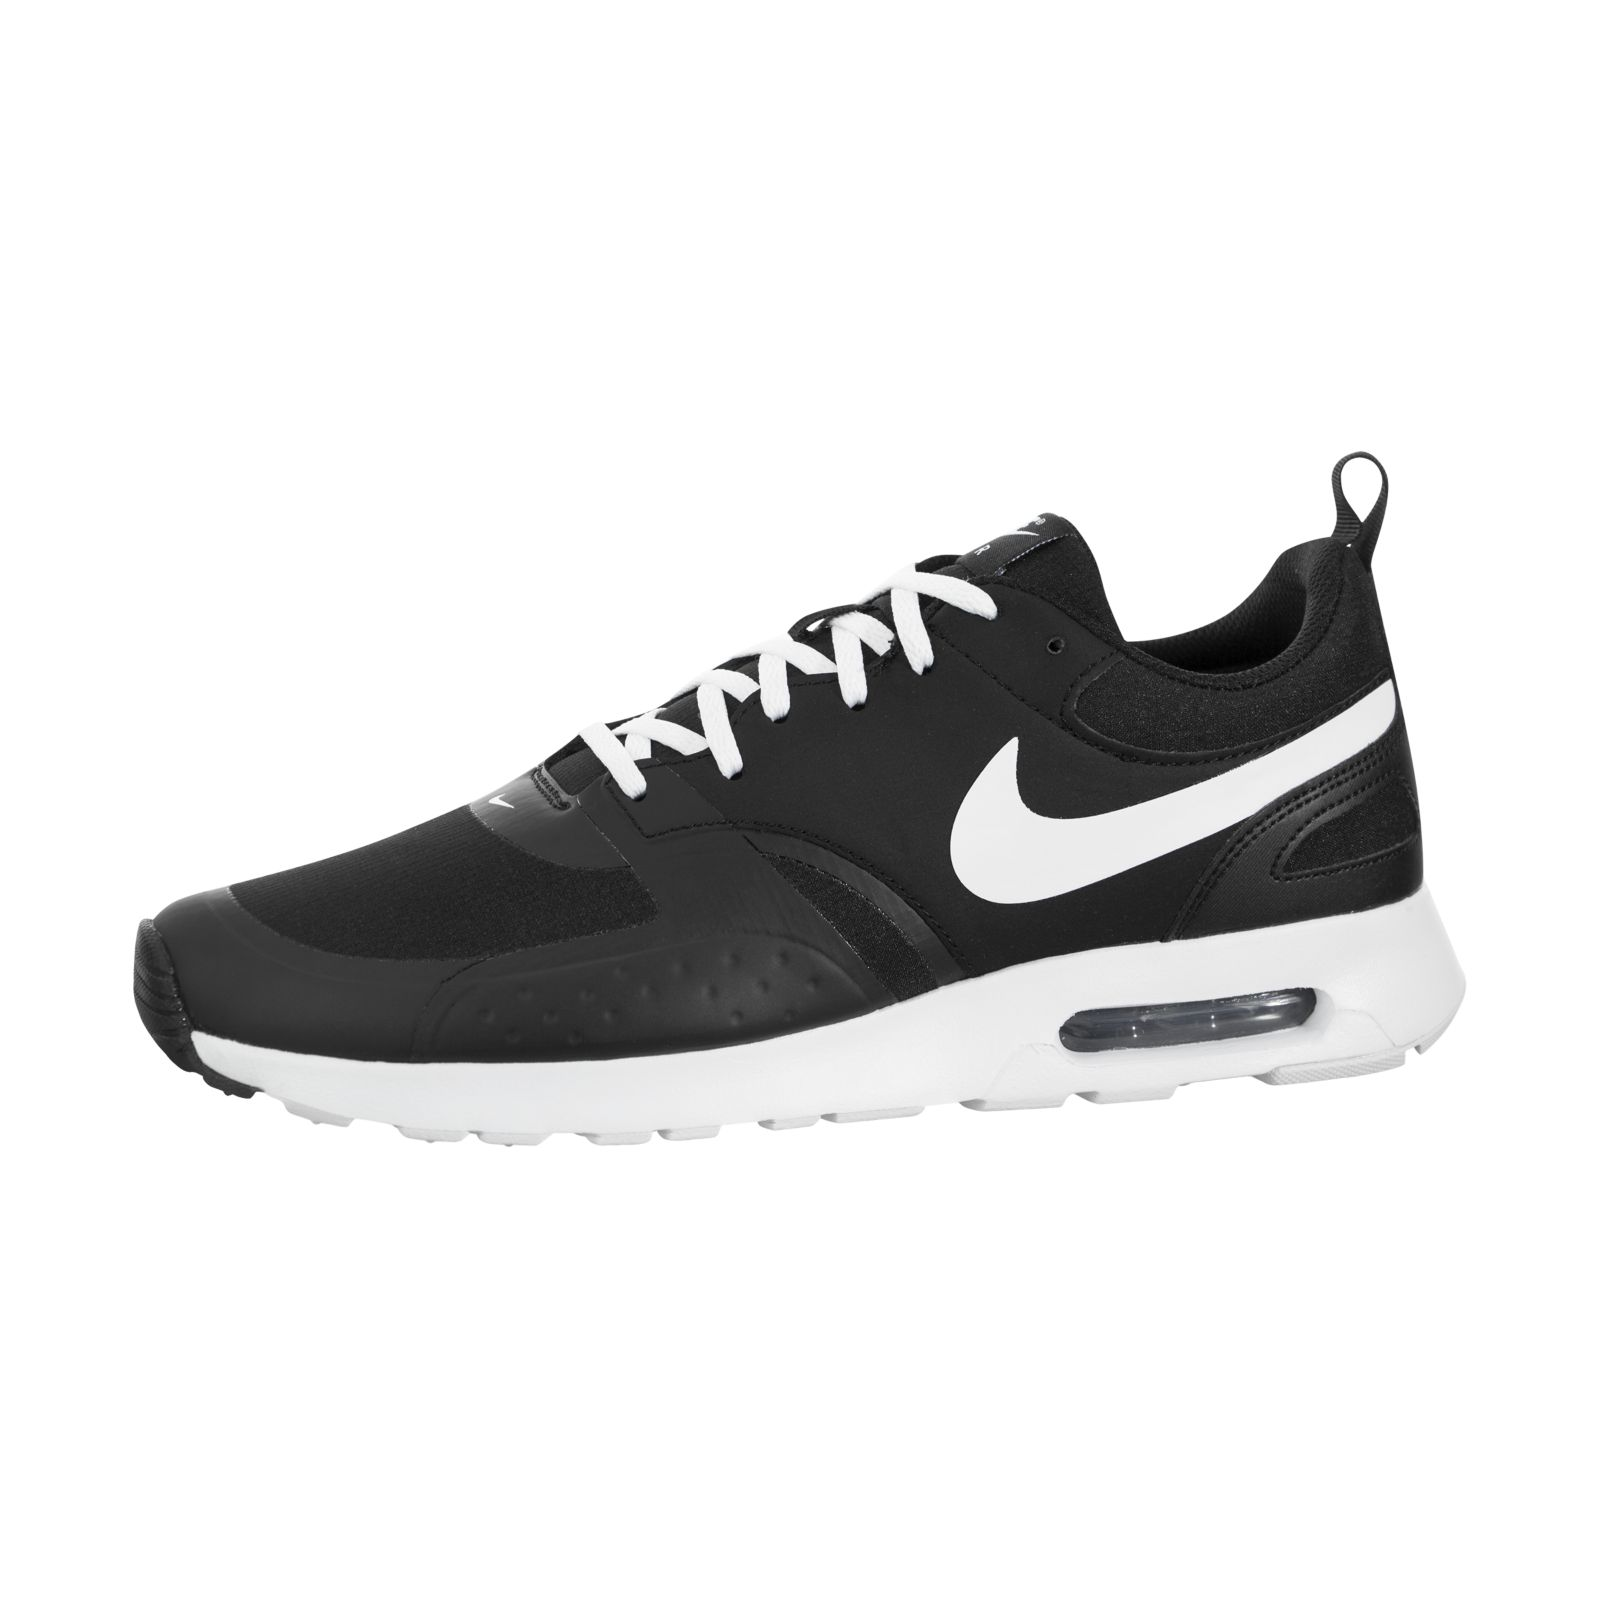 Nike Air Max Vision Mens 918230-007 Black White Athletic Running Shoes Size 10.5